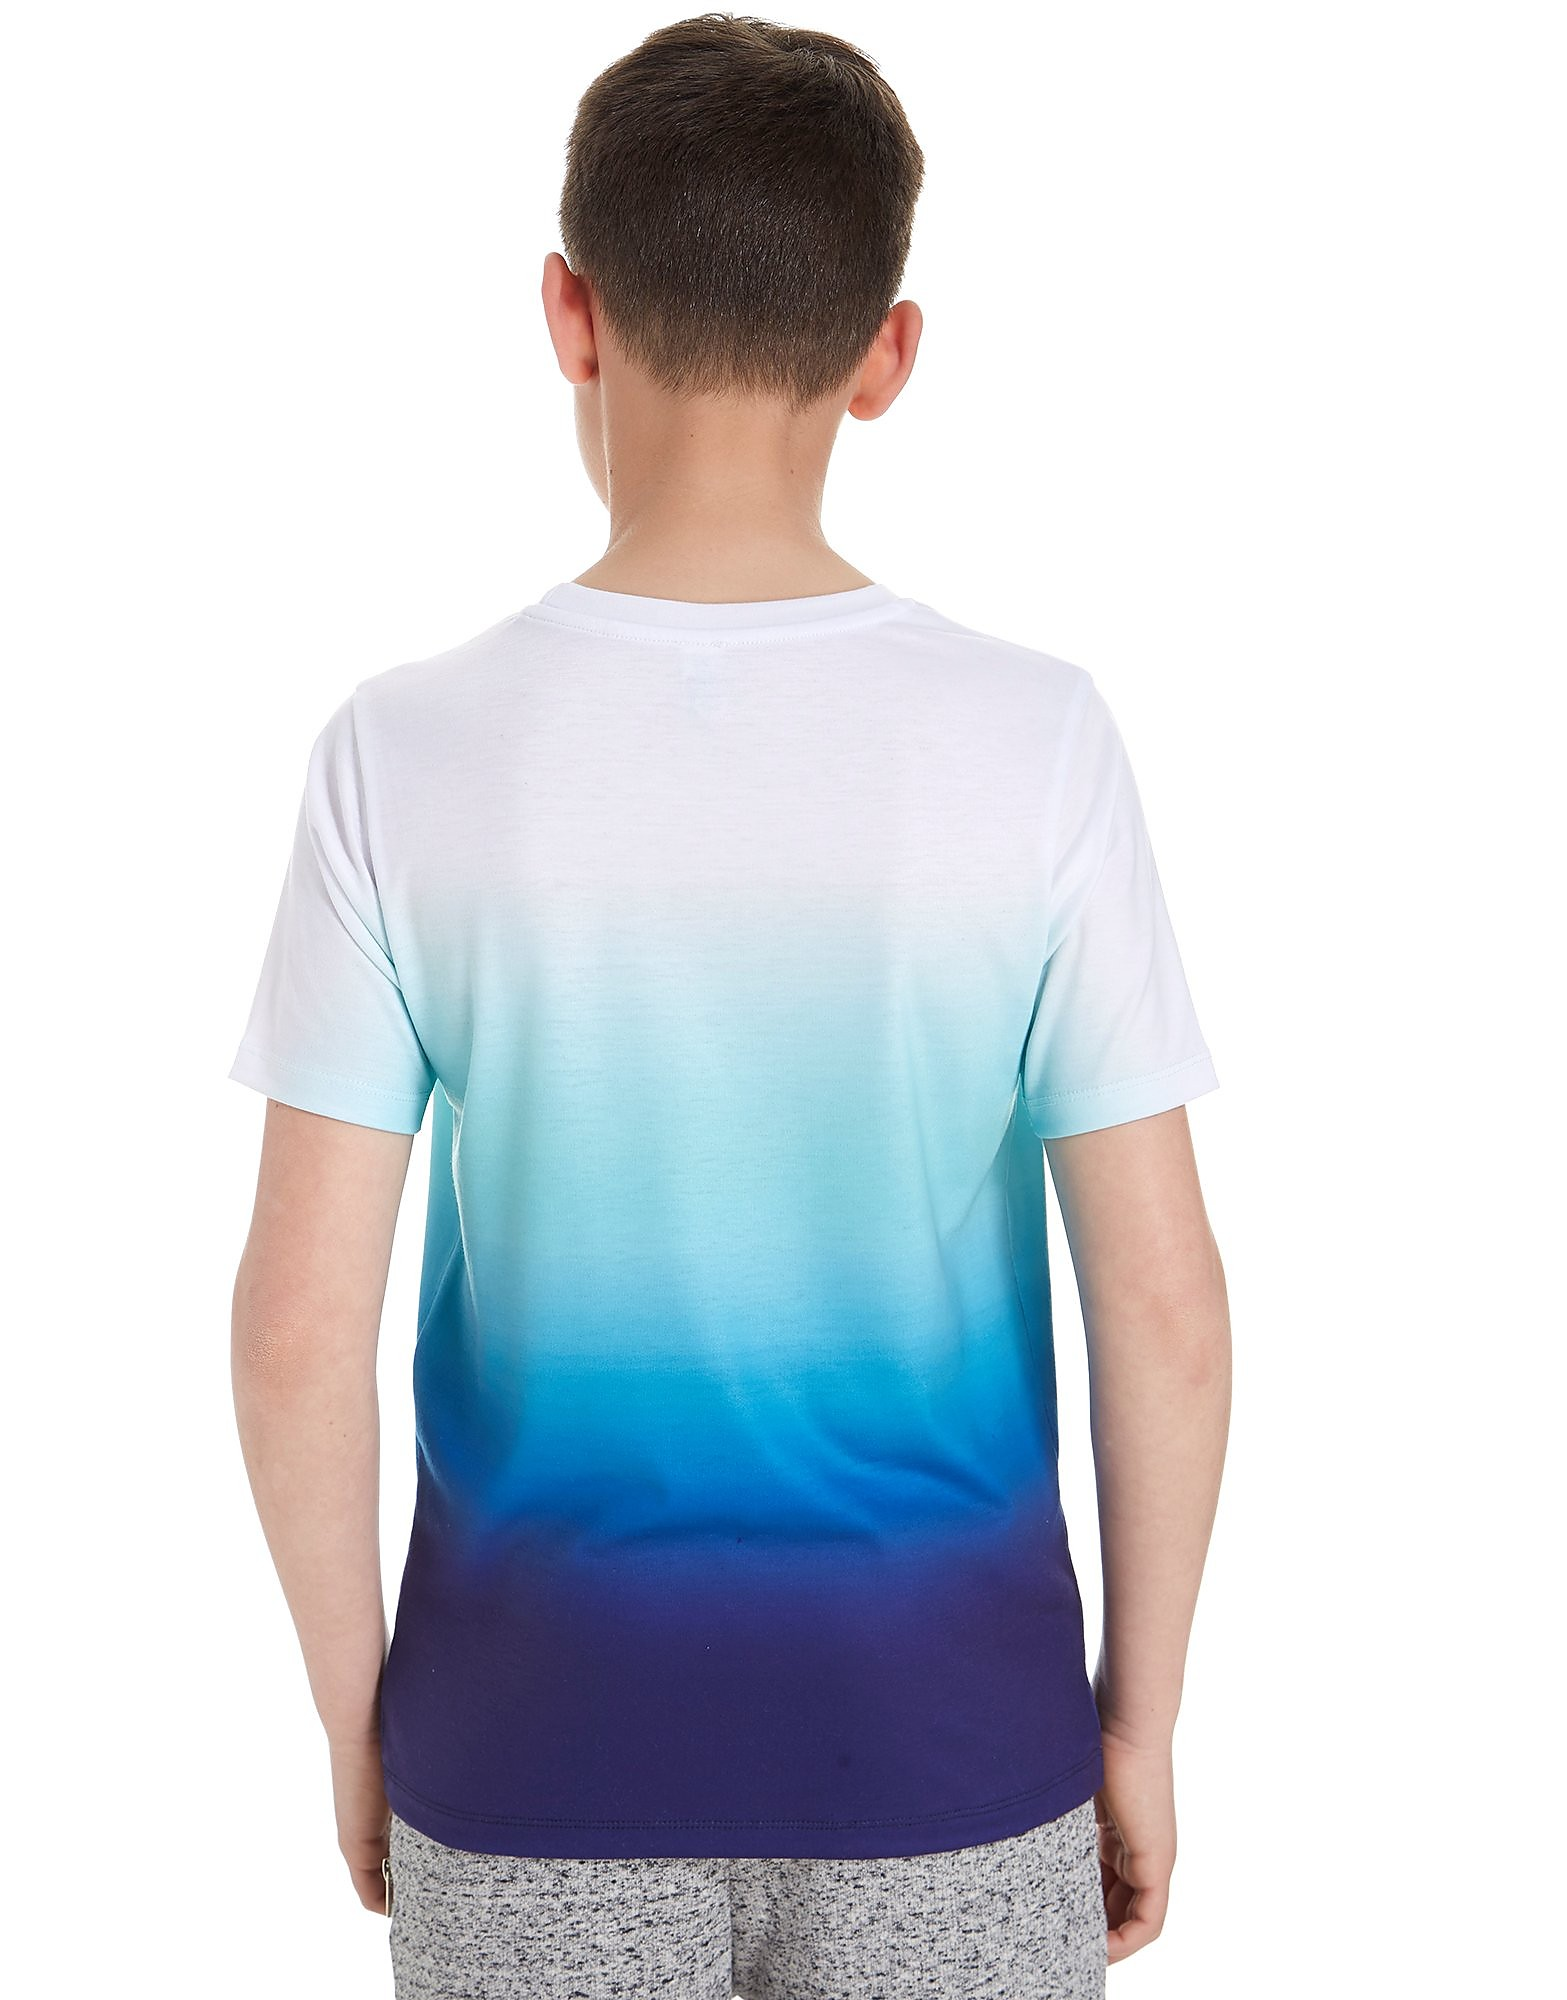 Hype Camiseta con degradado de color júnior